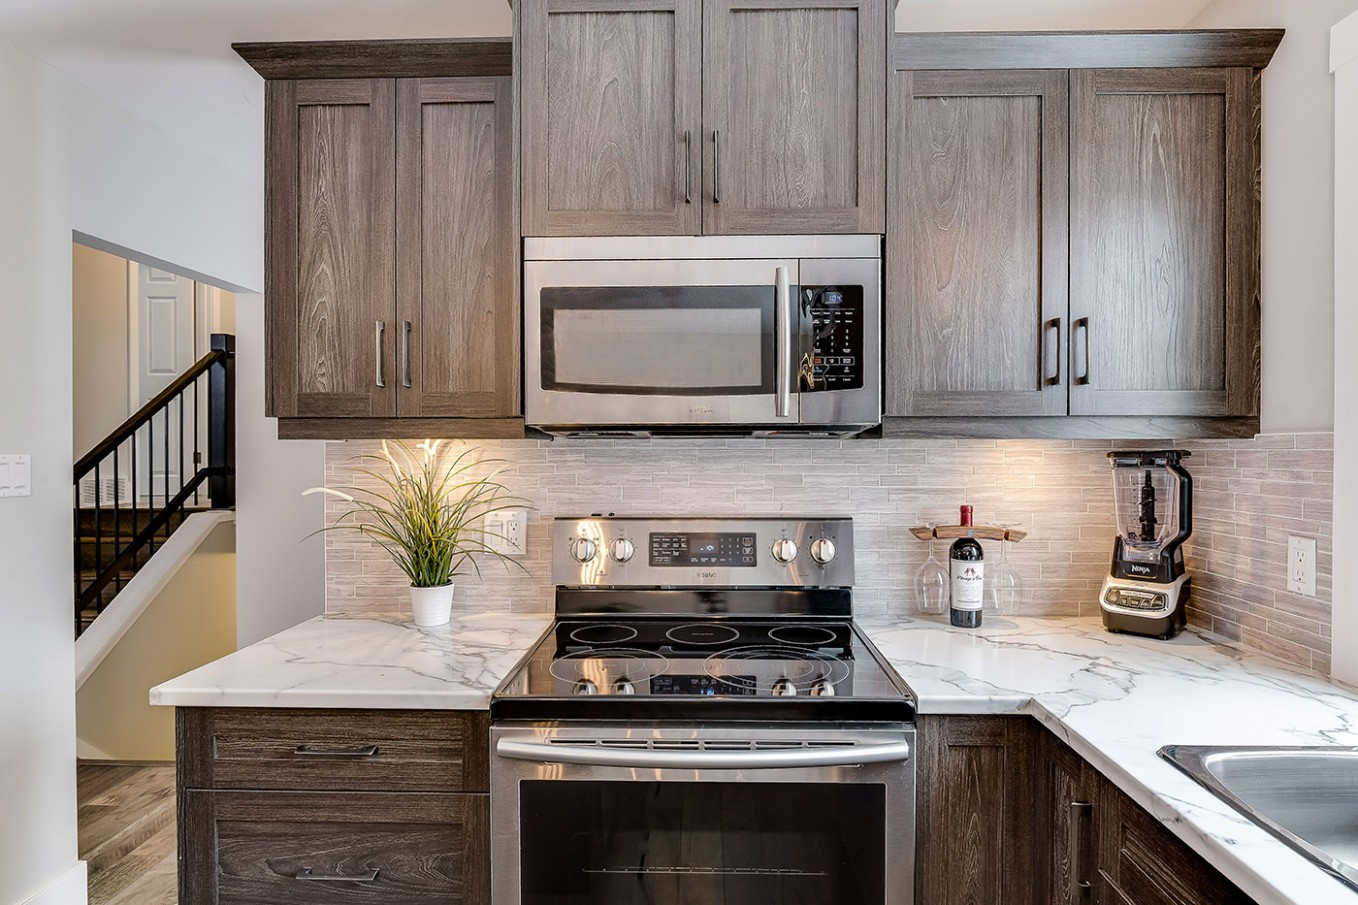 Under Cabinet Lighting Concealment Options  Superior Cabinets - How To Finish The Bottom Of Upper Kitchen Cabinets